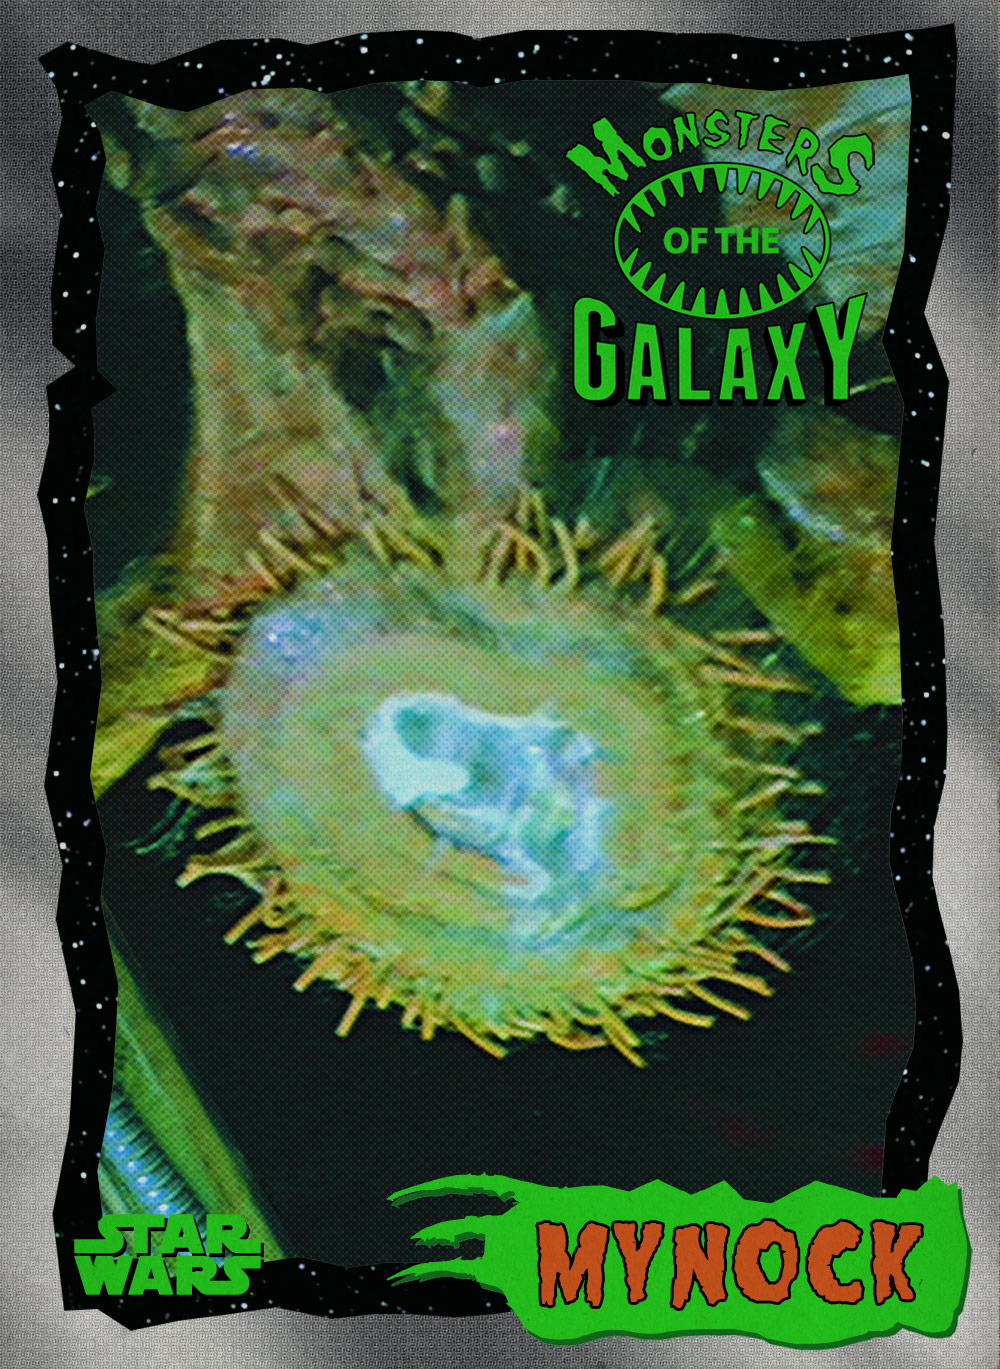 Monsters of the Galaxy